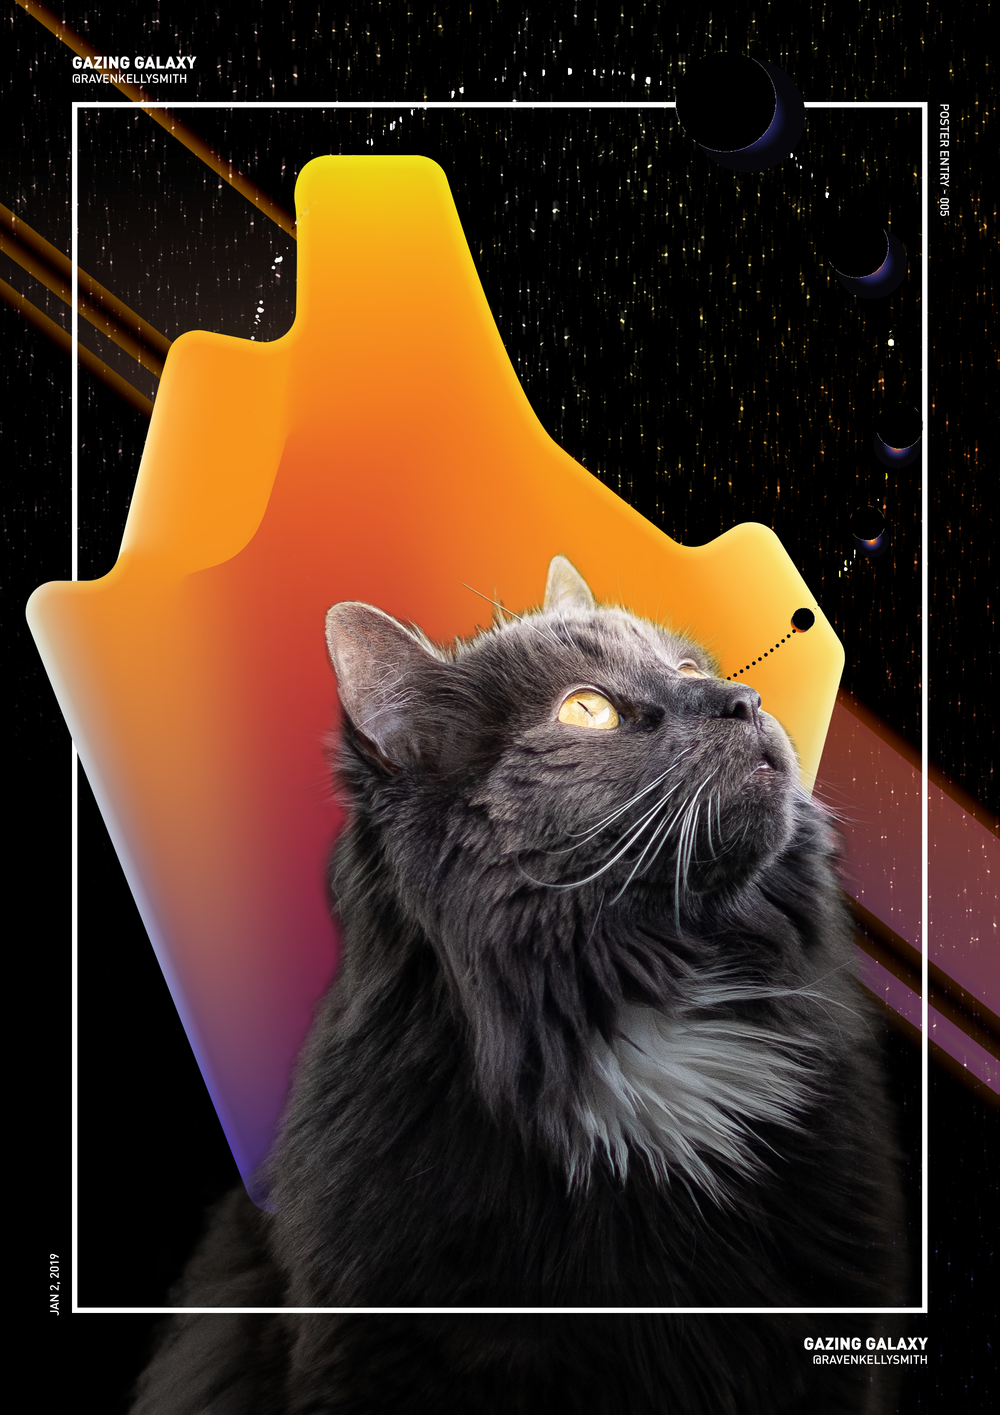 Poster-005-Gazing-Galaxyt.png